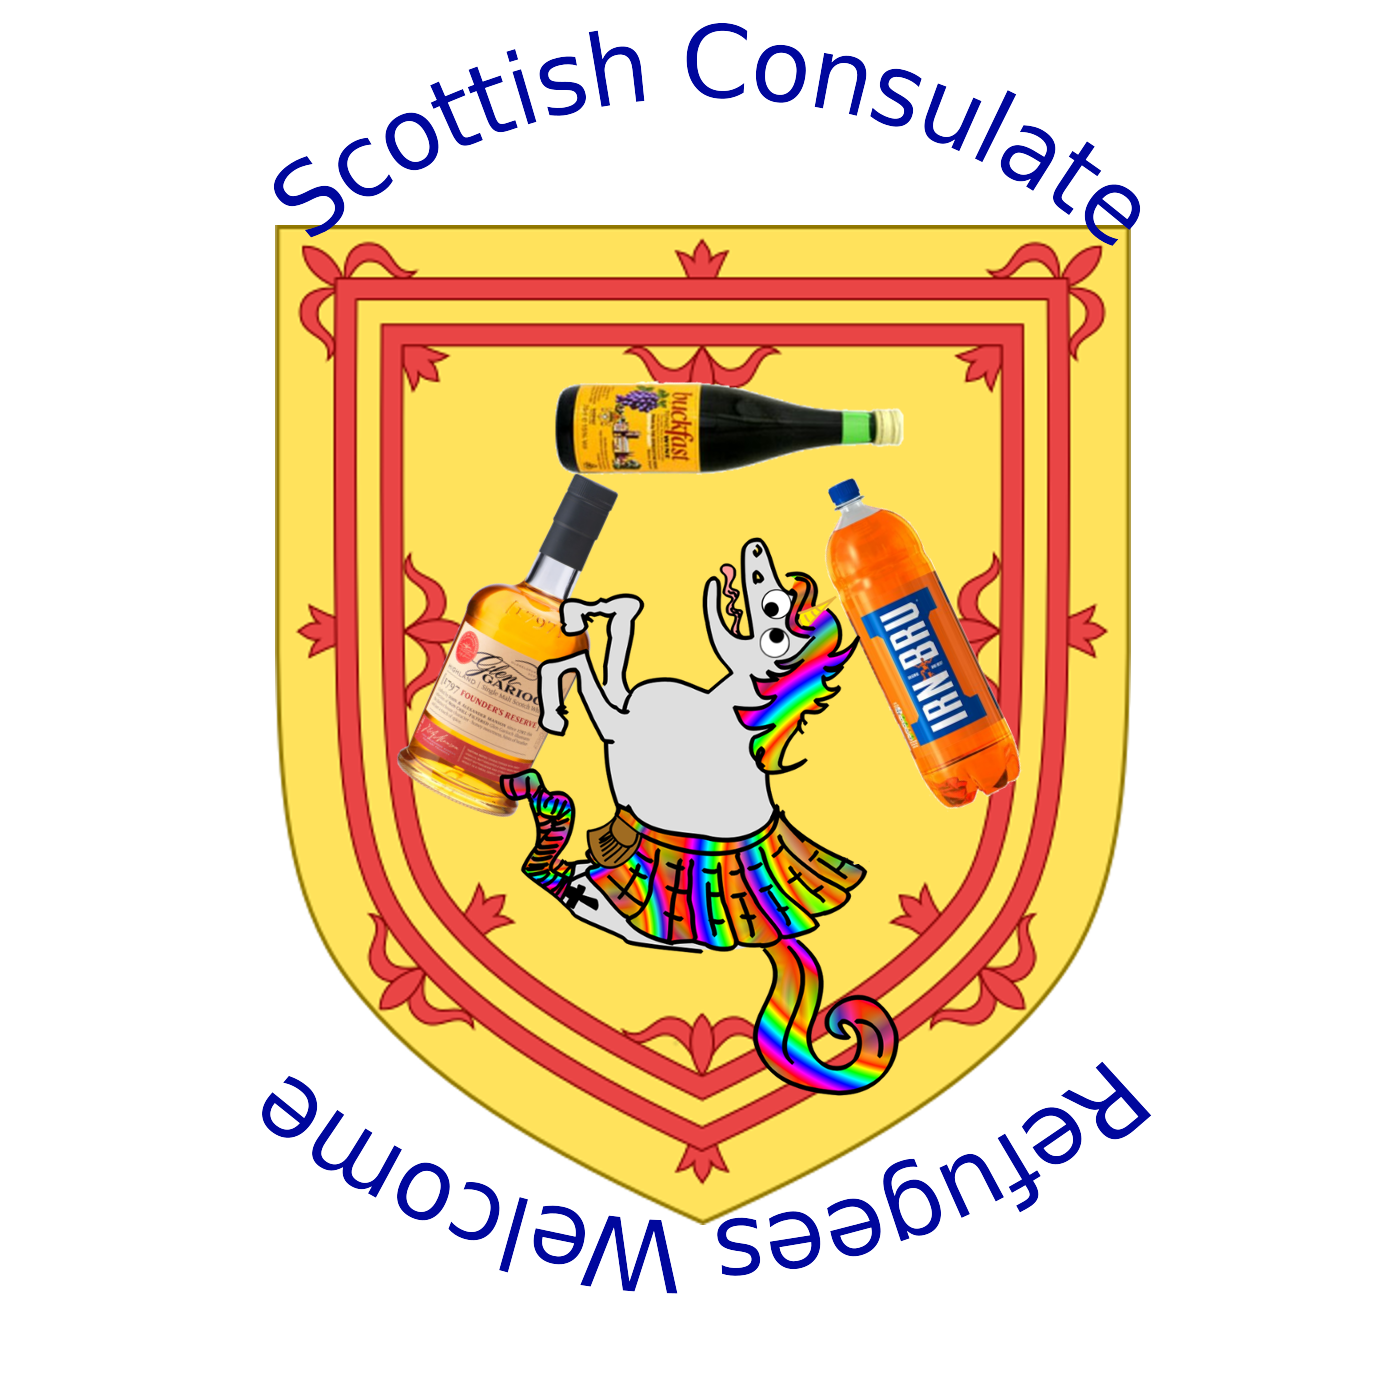 scotcon_coat_of_arms.png